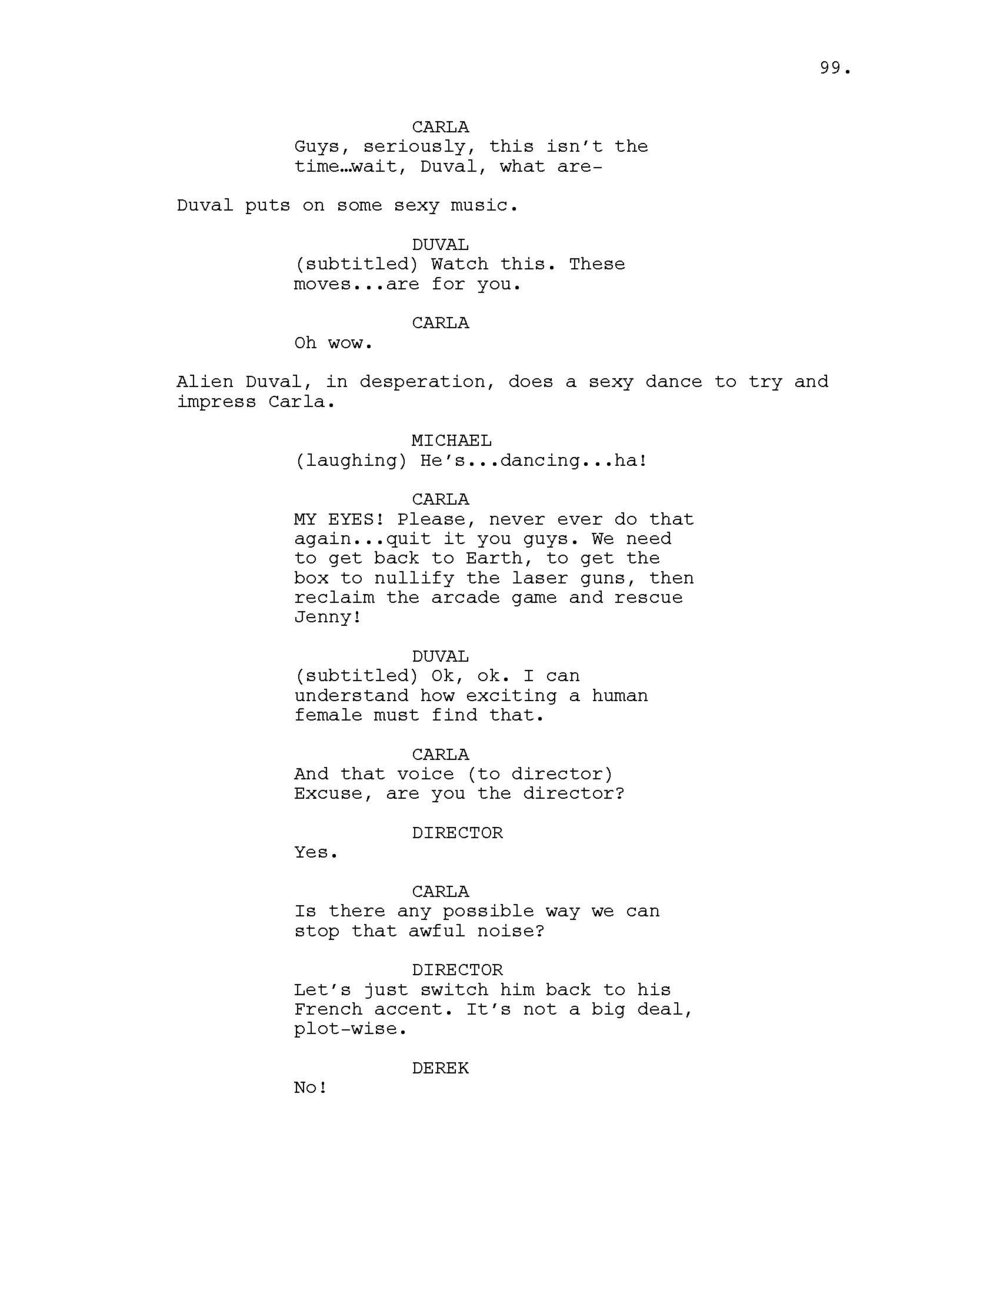 INVISIBLE WORLD SCRIPT_Page_100.jpg